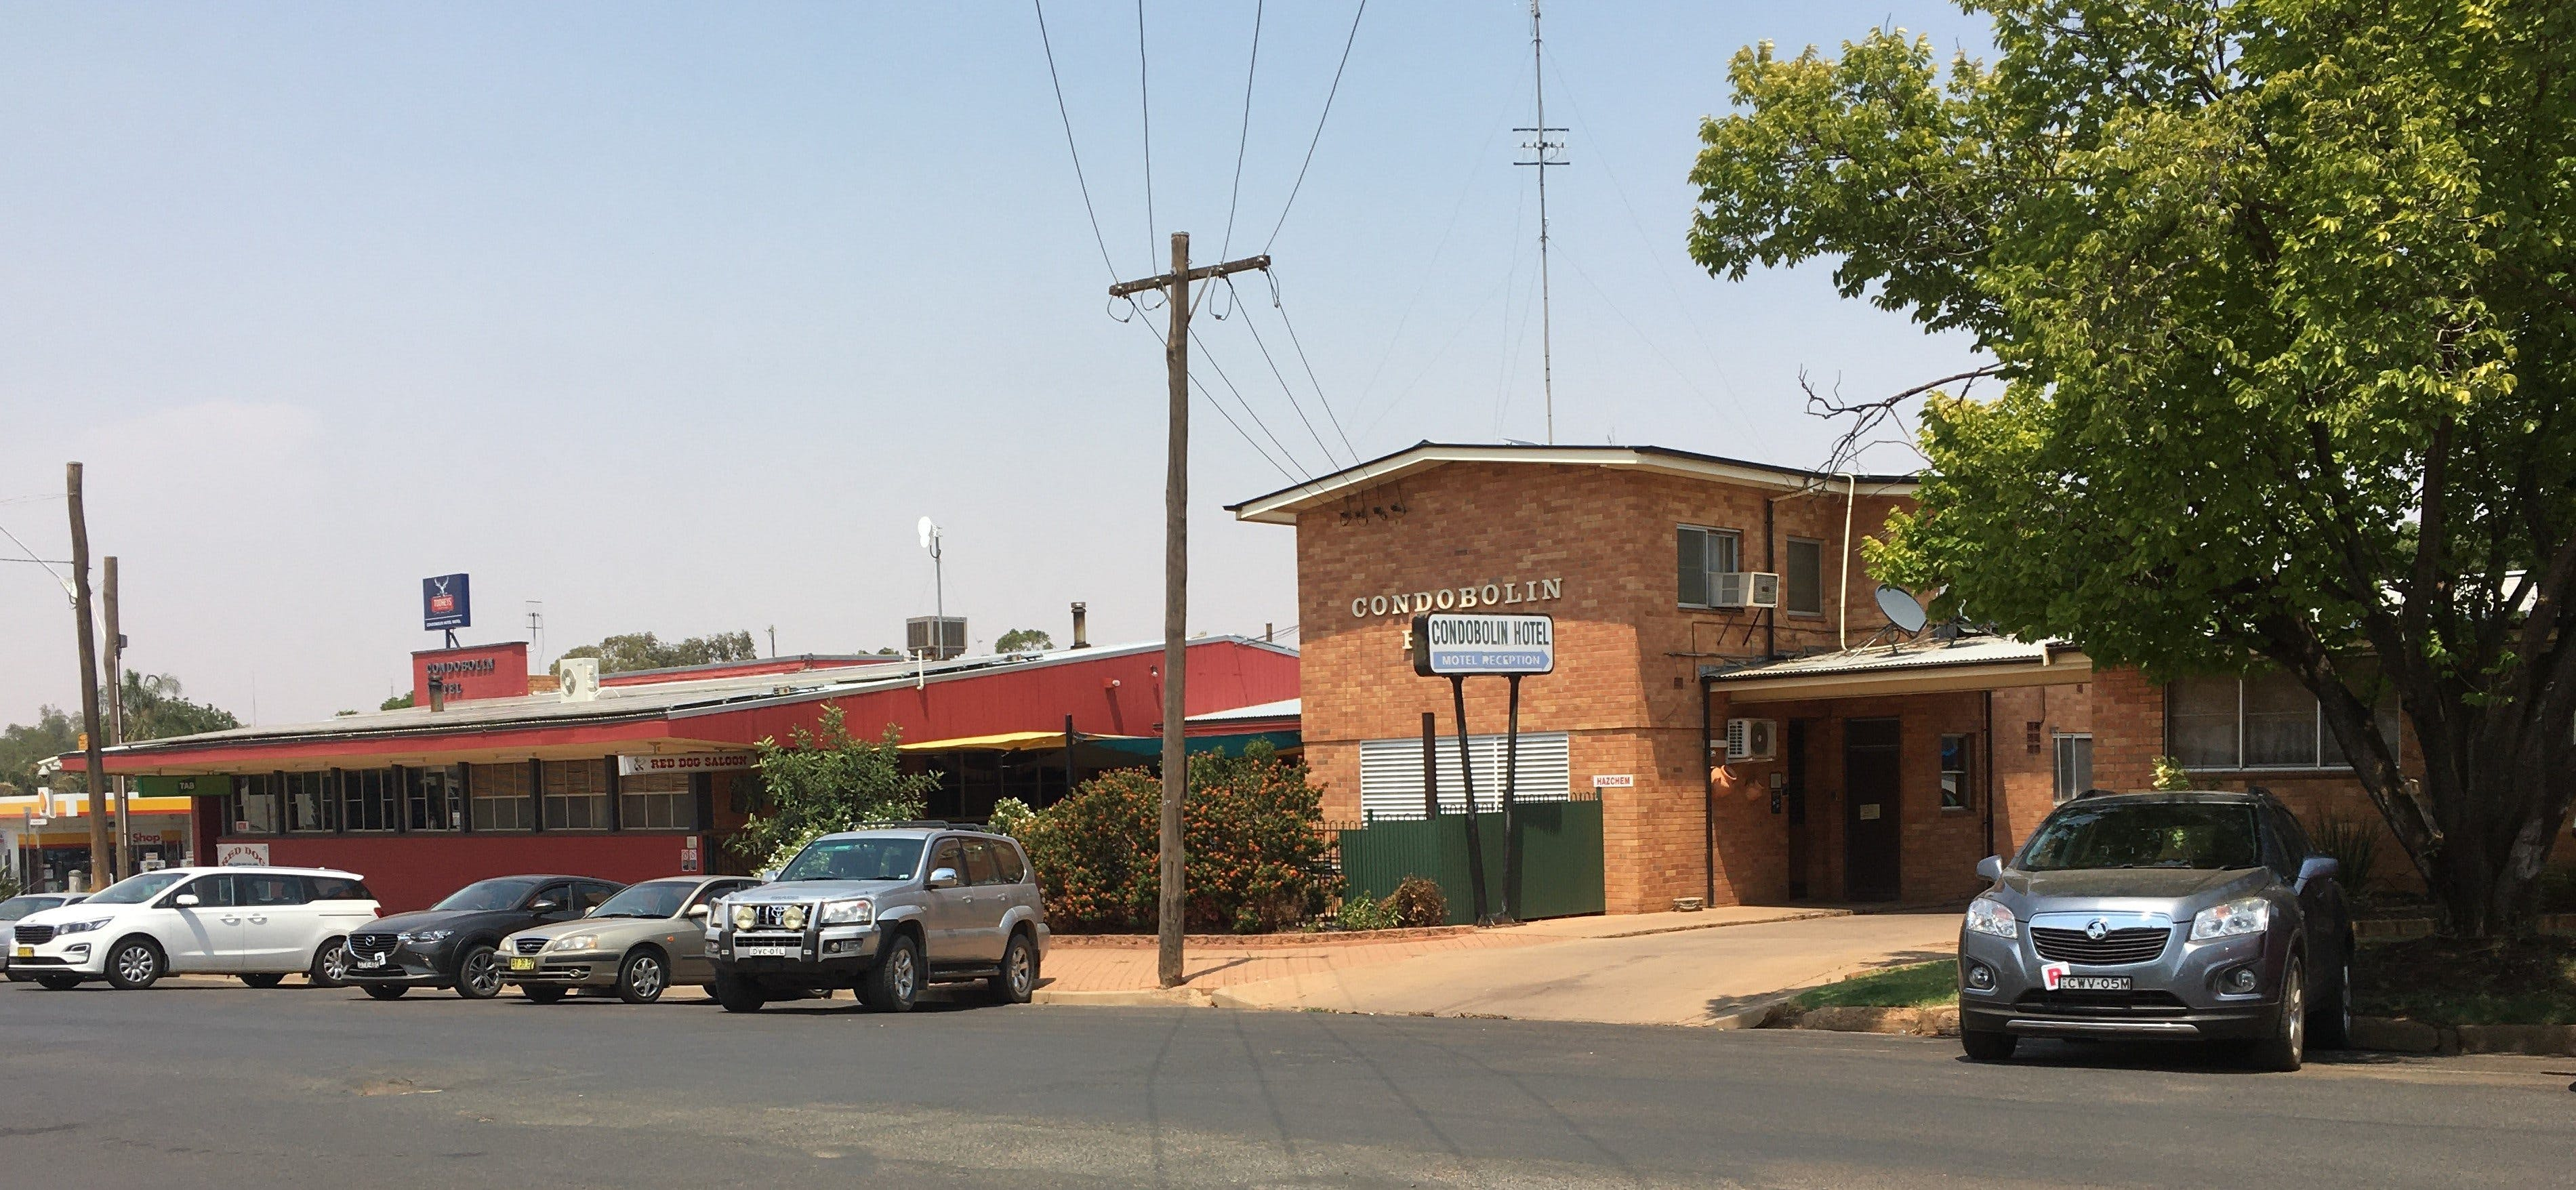 The Condobolin Hotel - Perisher Accommodation